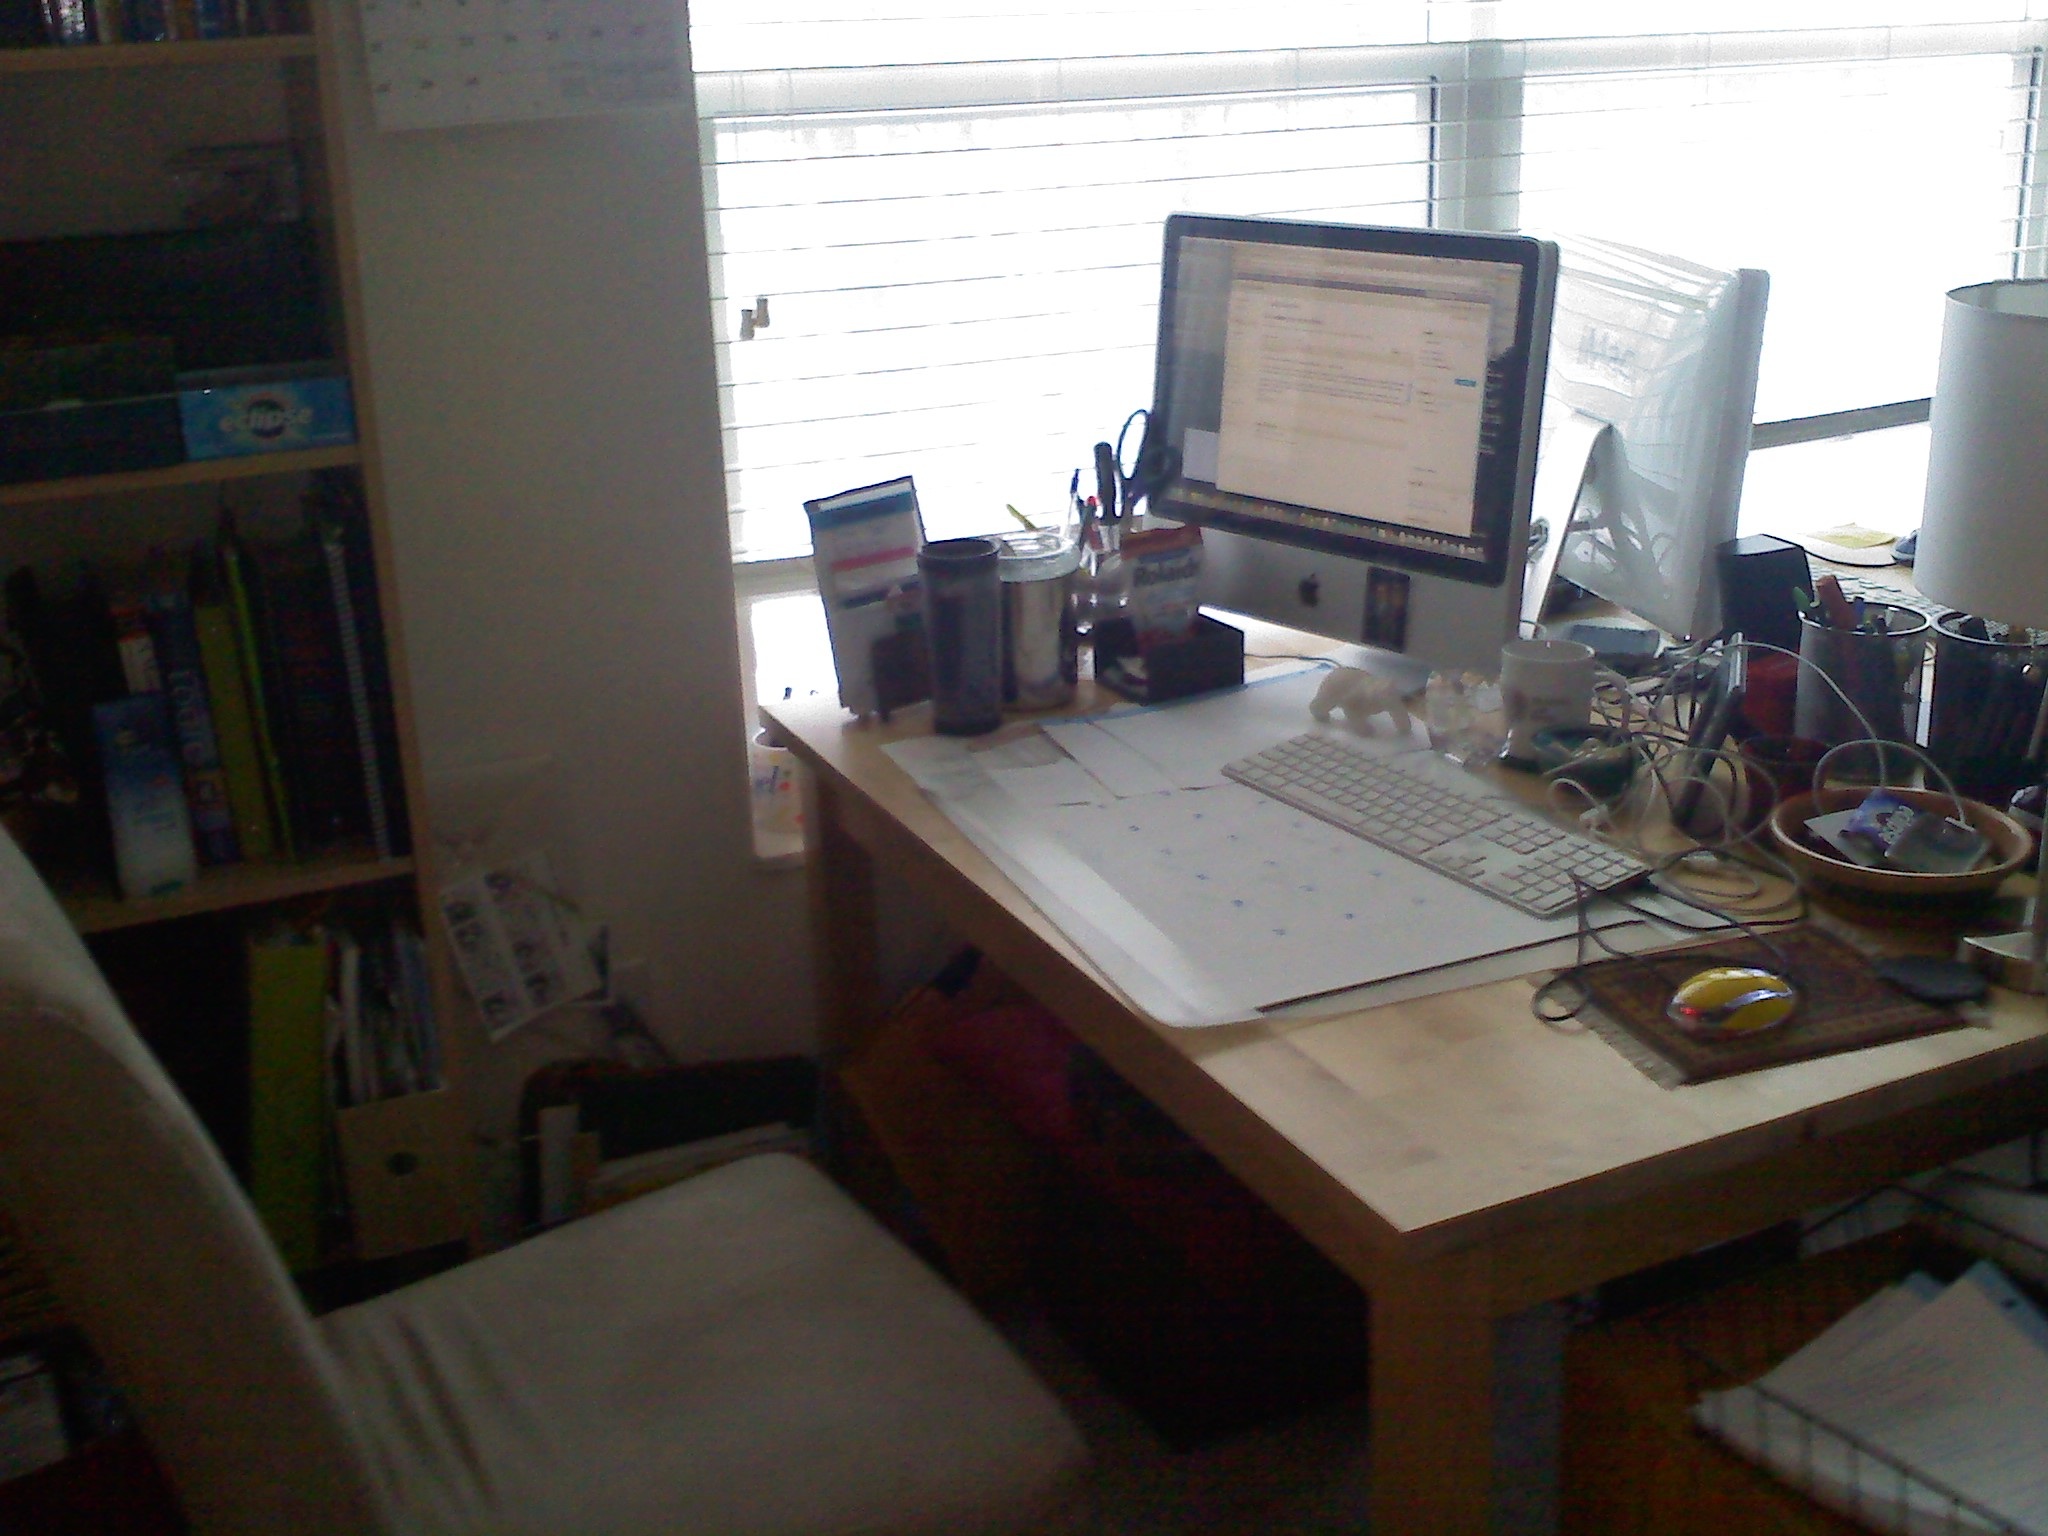 my home office. But \u2014 It Turns Out My Home Office Is Lovely\u2026 The Snow Blowing Outside, It\u0027s Warm And Cozy In Office\u2026 I Have Music, A Nice Window To Watch